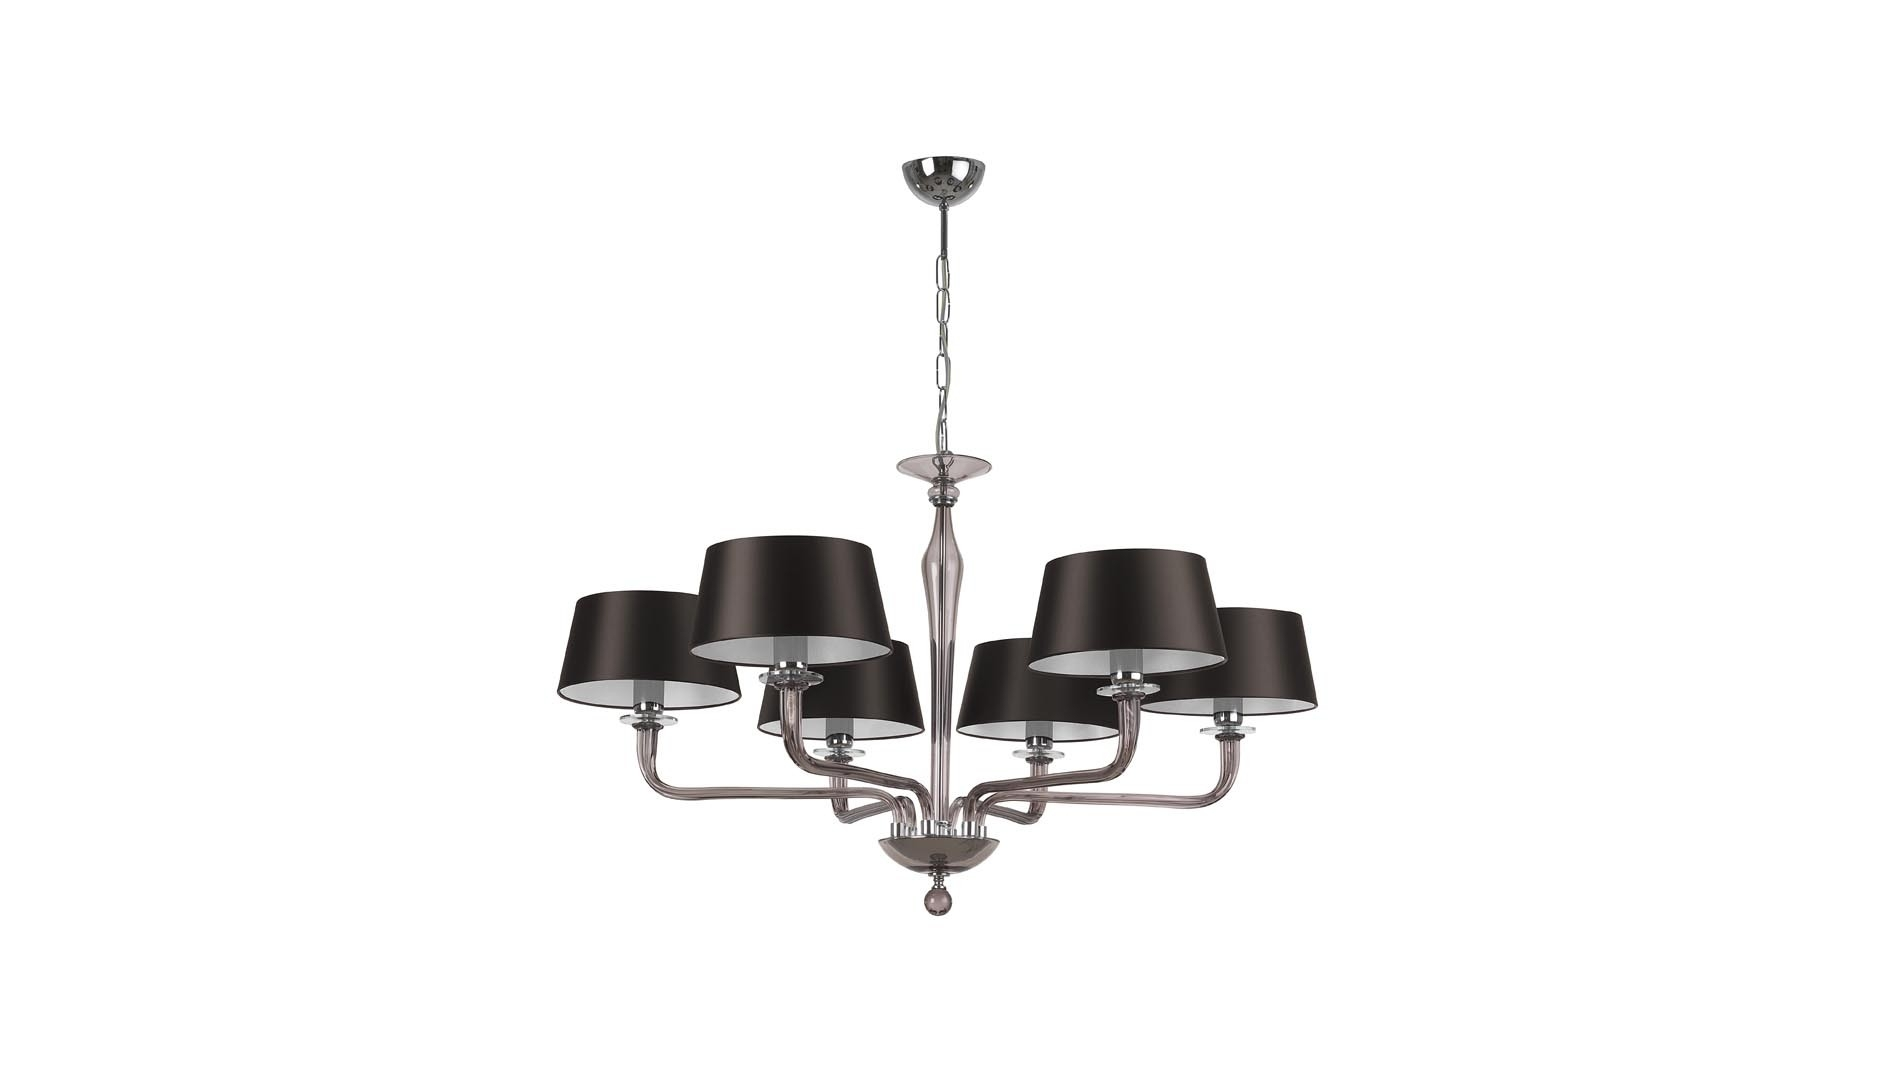 Homebase Ceiling Lights And Shades – Ceiling Designs In Outdoor Ceiling Lights At Homebase (#8 of 15)